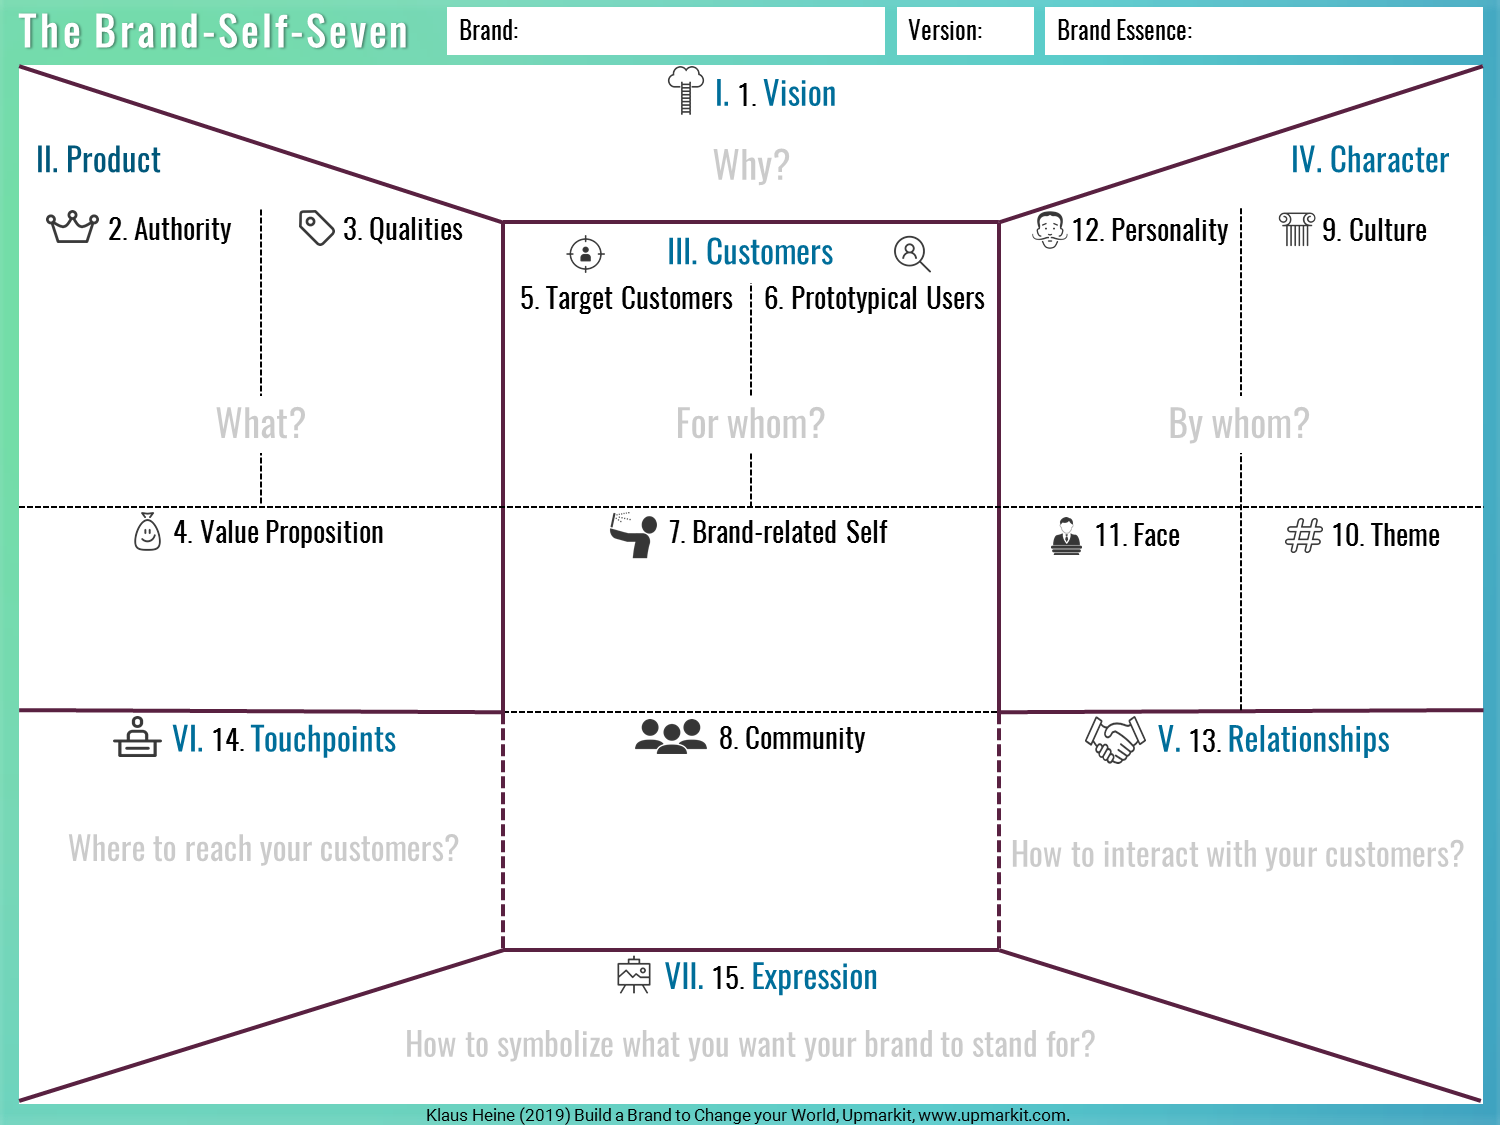 The Brand-Self-Seven - Brand Identity Planning Model